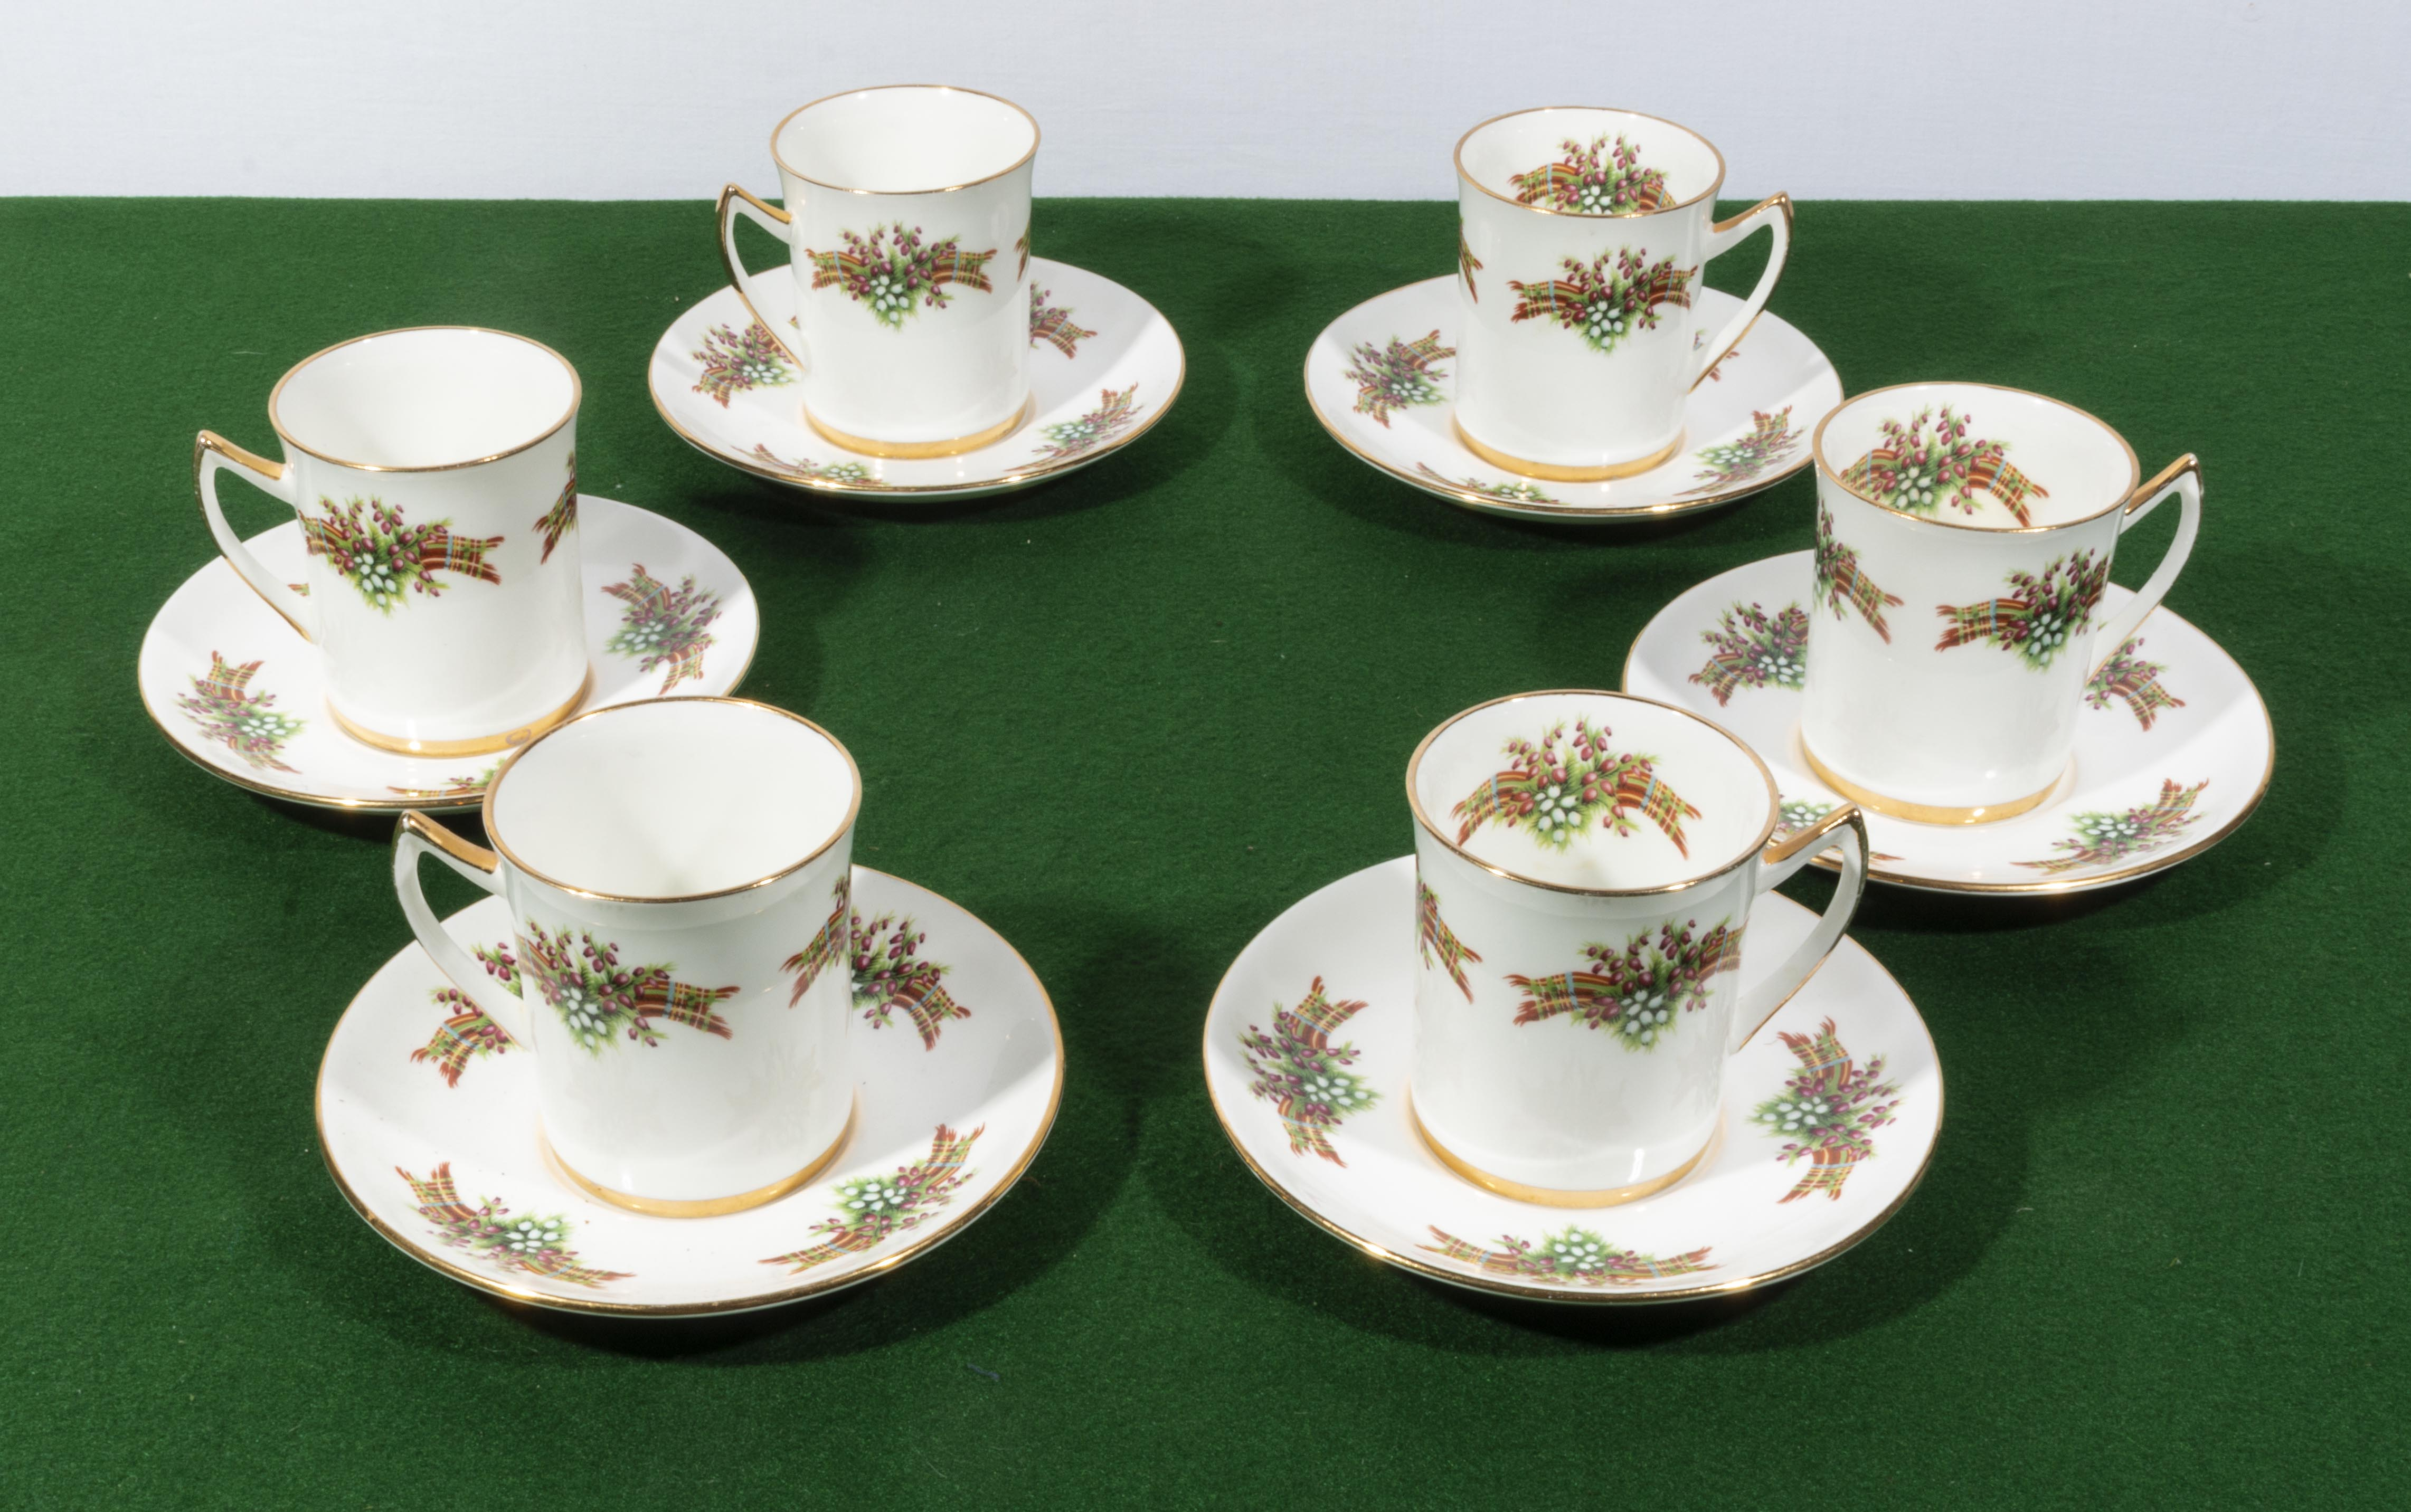 Lot 30 - Six coffee cups and saucers